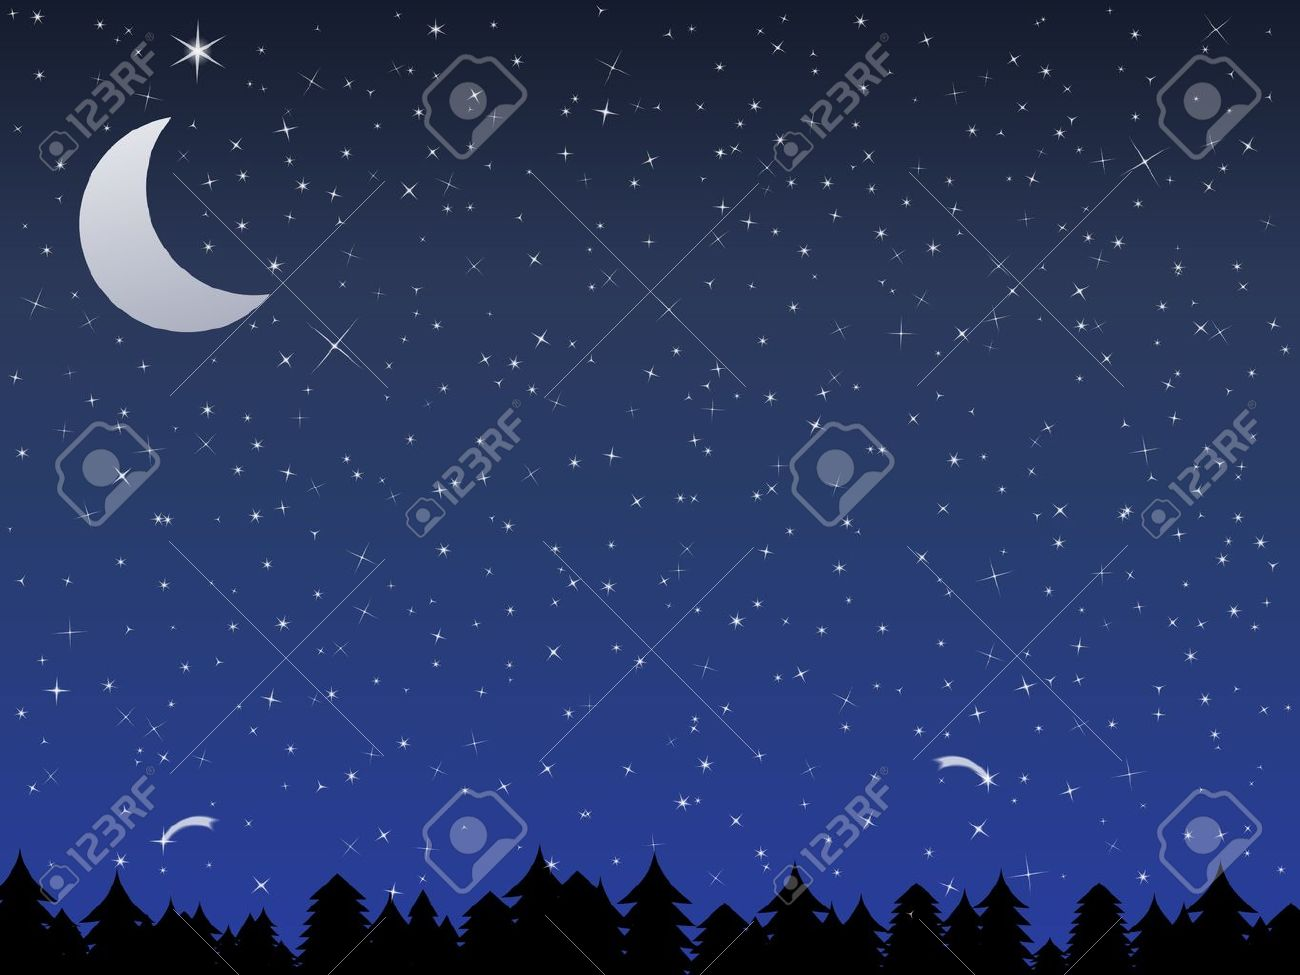 Silhouette of a forest and night sky with stars and moon, vector illustration - 11030292